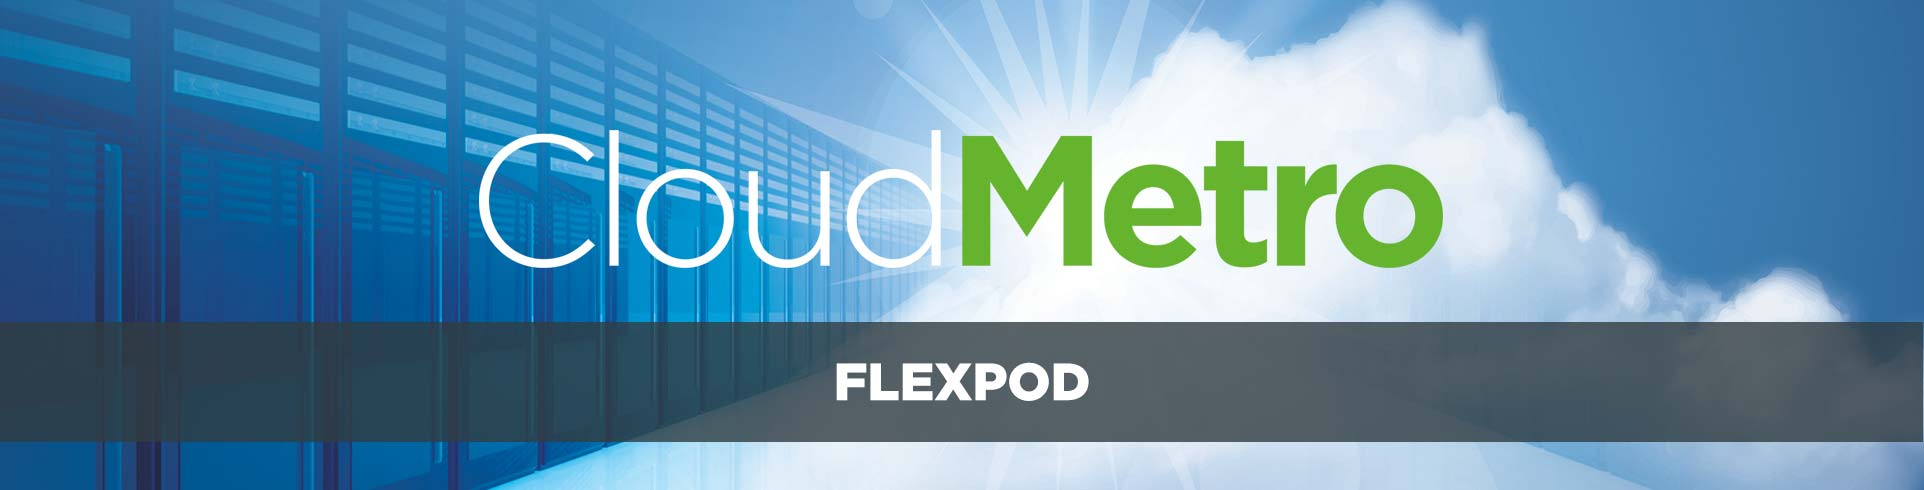 FlexPod is a proven, flexible converged cloud infrastructure stack designed to bring agility to businesses across industries.